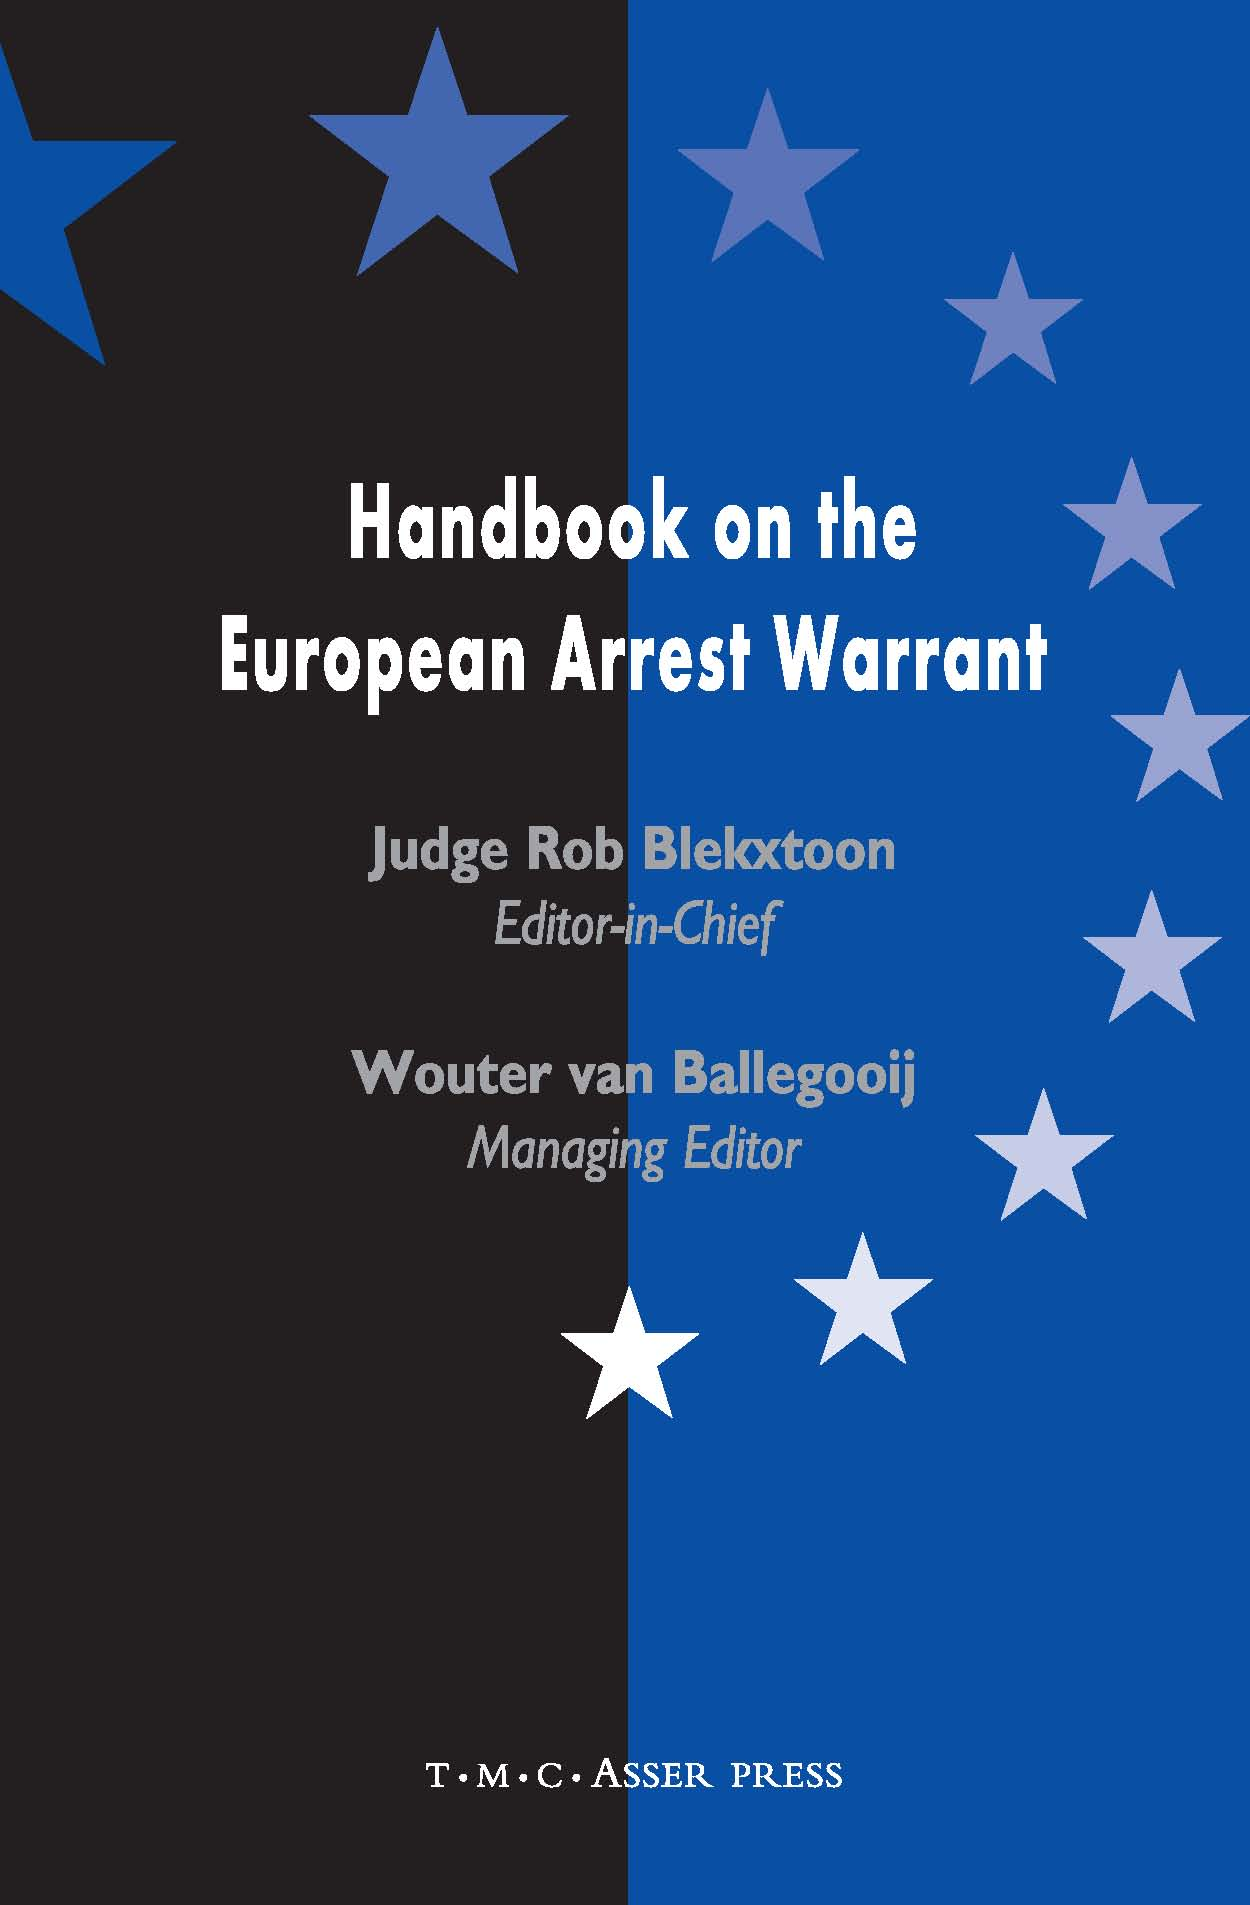 Handbook on the European Arrest Warrant